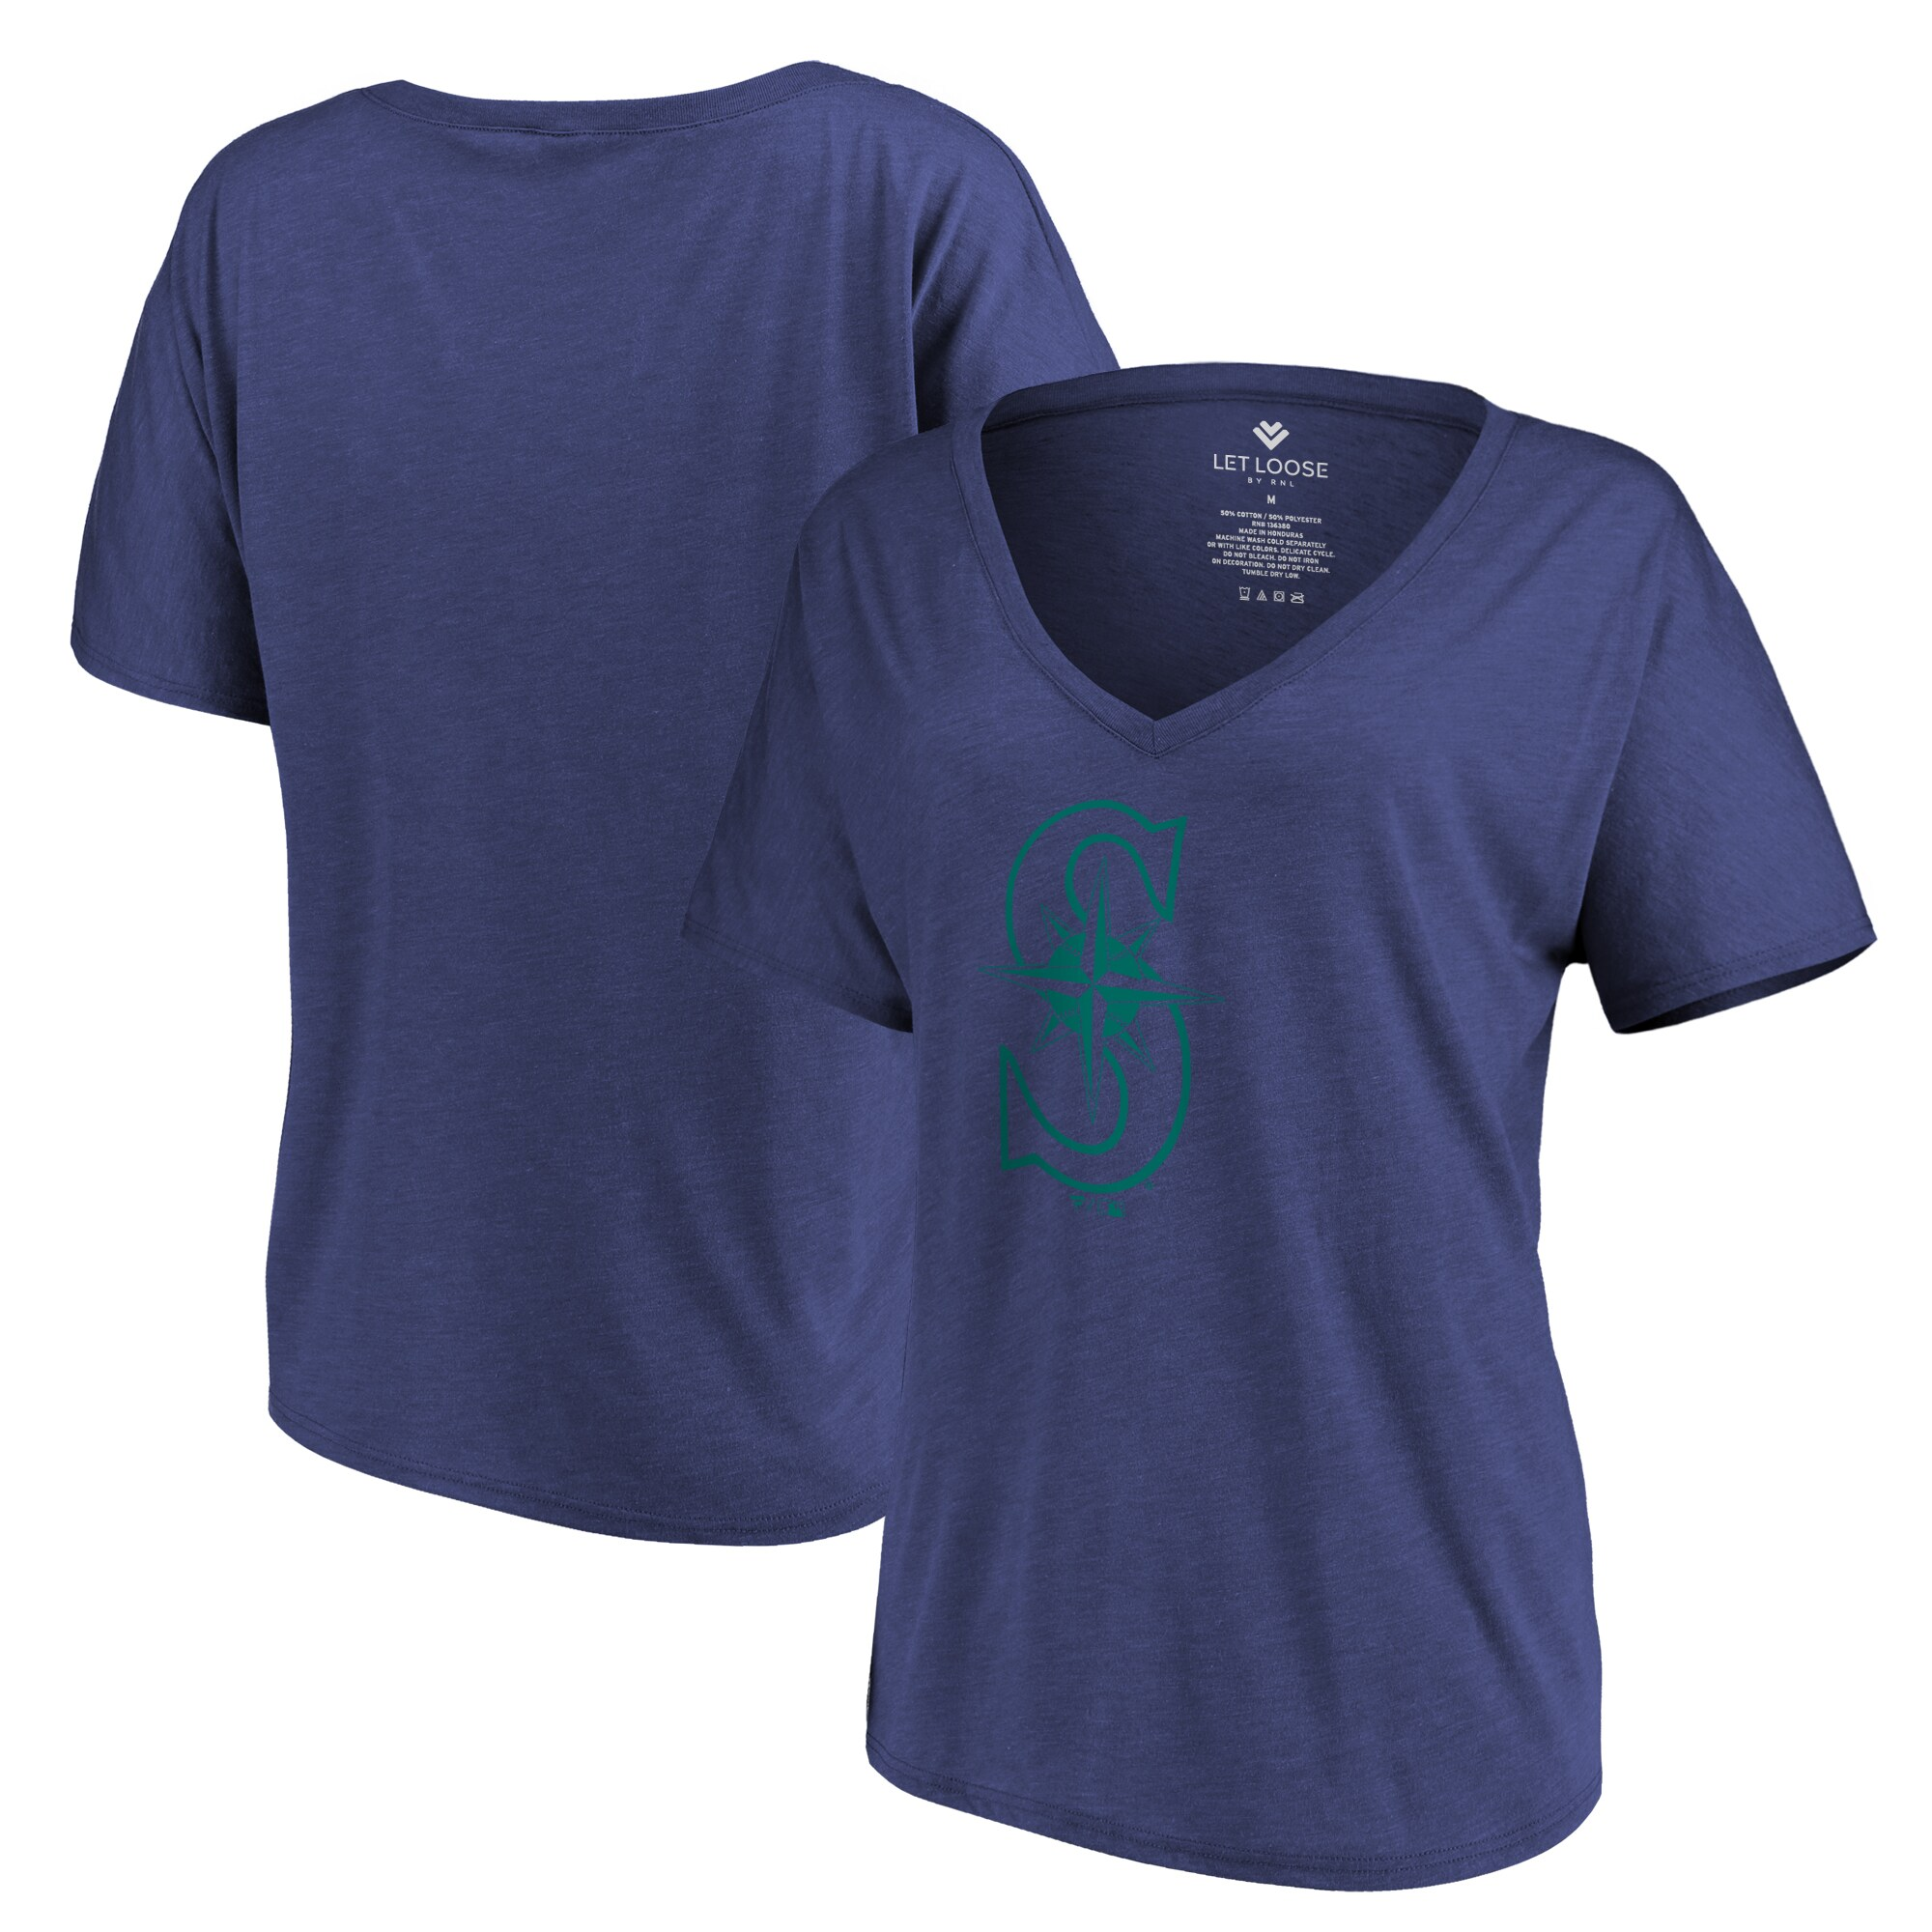 Seattle Mariners Let Loose by RNL Women's Distressed Primary Logo T-Shirt - Navy